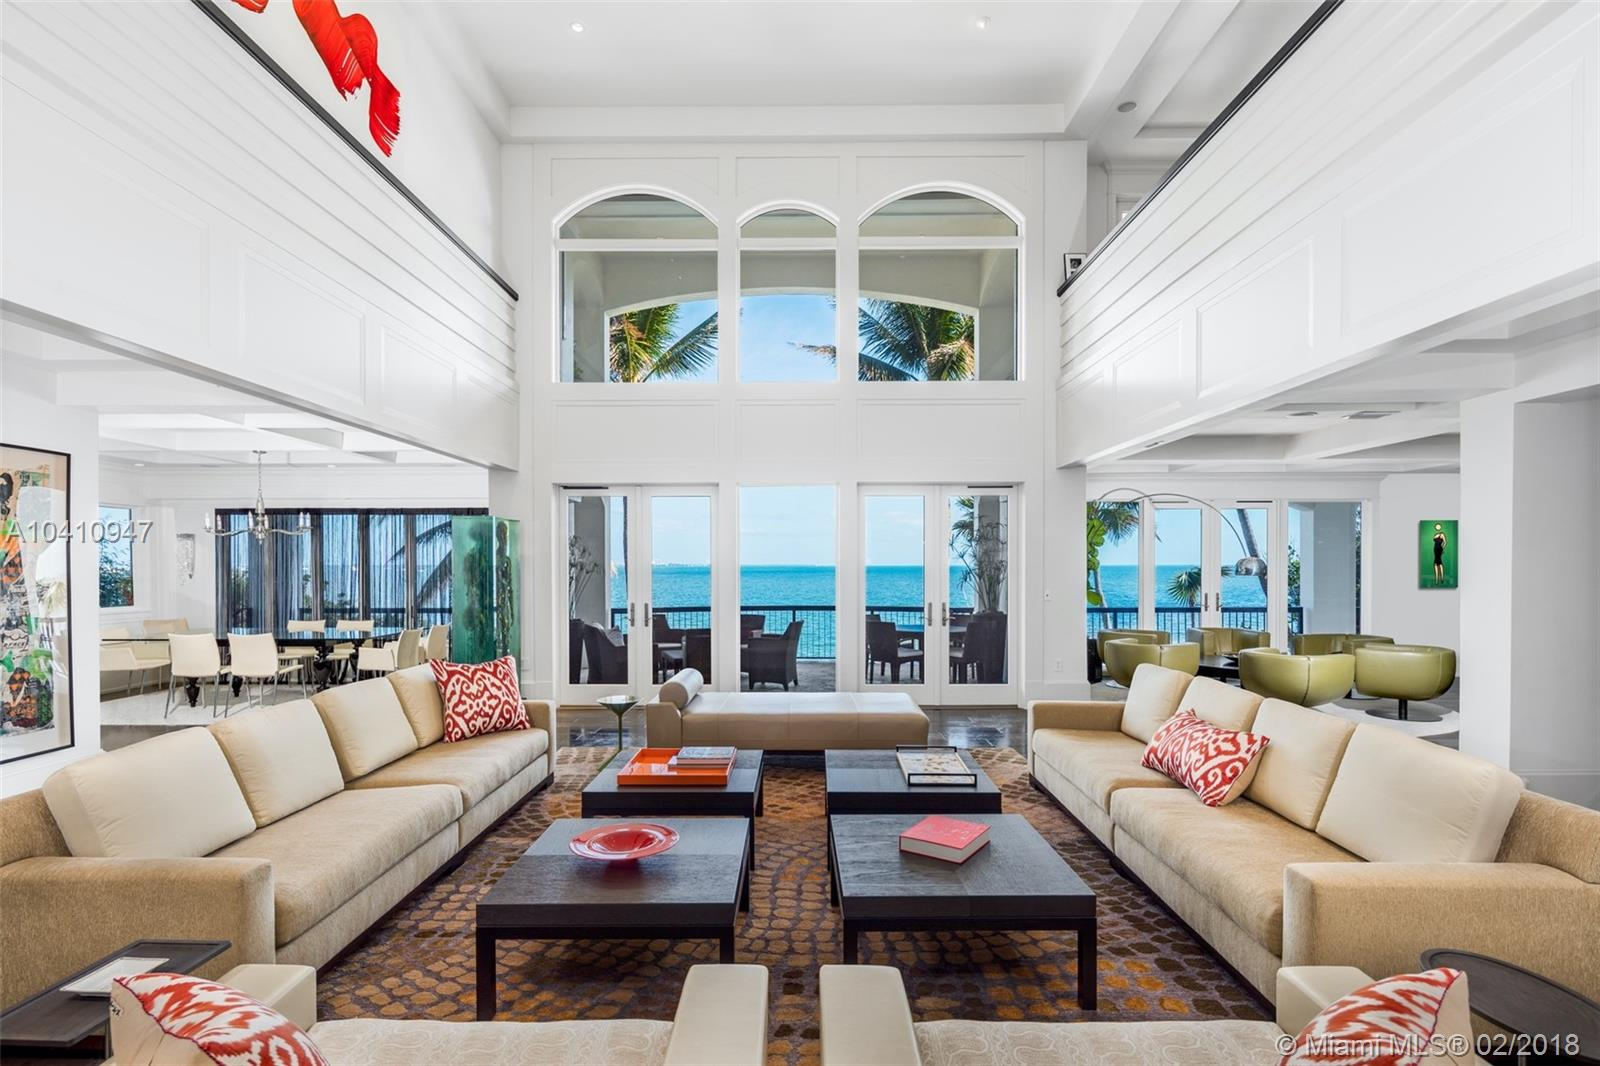 Enjoy living in this contemporary masterpiece located in coveted guard gated Four Way Lodge Estates on the wide-open bay in Coconut Grove. No expense spared in this 5BD/5.3BA 13,101 Total SF estate,offering 97 Ft of WF with unobstructed panoramic views. This private residence exemplifies indoor/outdoor living at its finest, featuring surround sound system, home gym, media room, hurricane impact windows & boat lift/dock. State-of the-art chef's kitchen boasts top of the line appliances, gas cooktop, & an outdoor herb garden.Take in stunning bay views throughout your very own tropical oasis & relax in your spacious master suite,complete w/spa-like bath. Entertain by the pool in your luscious backyard & dine al-fresco on the expansive covered patio,complete w/outside kitchenette, BBQ & bar